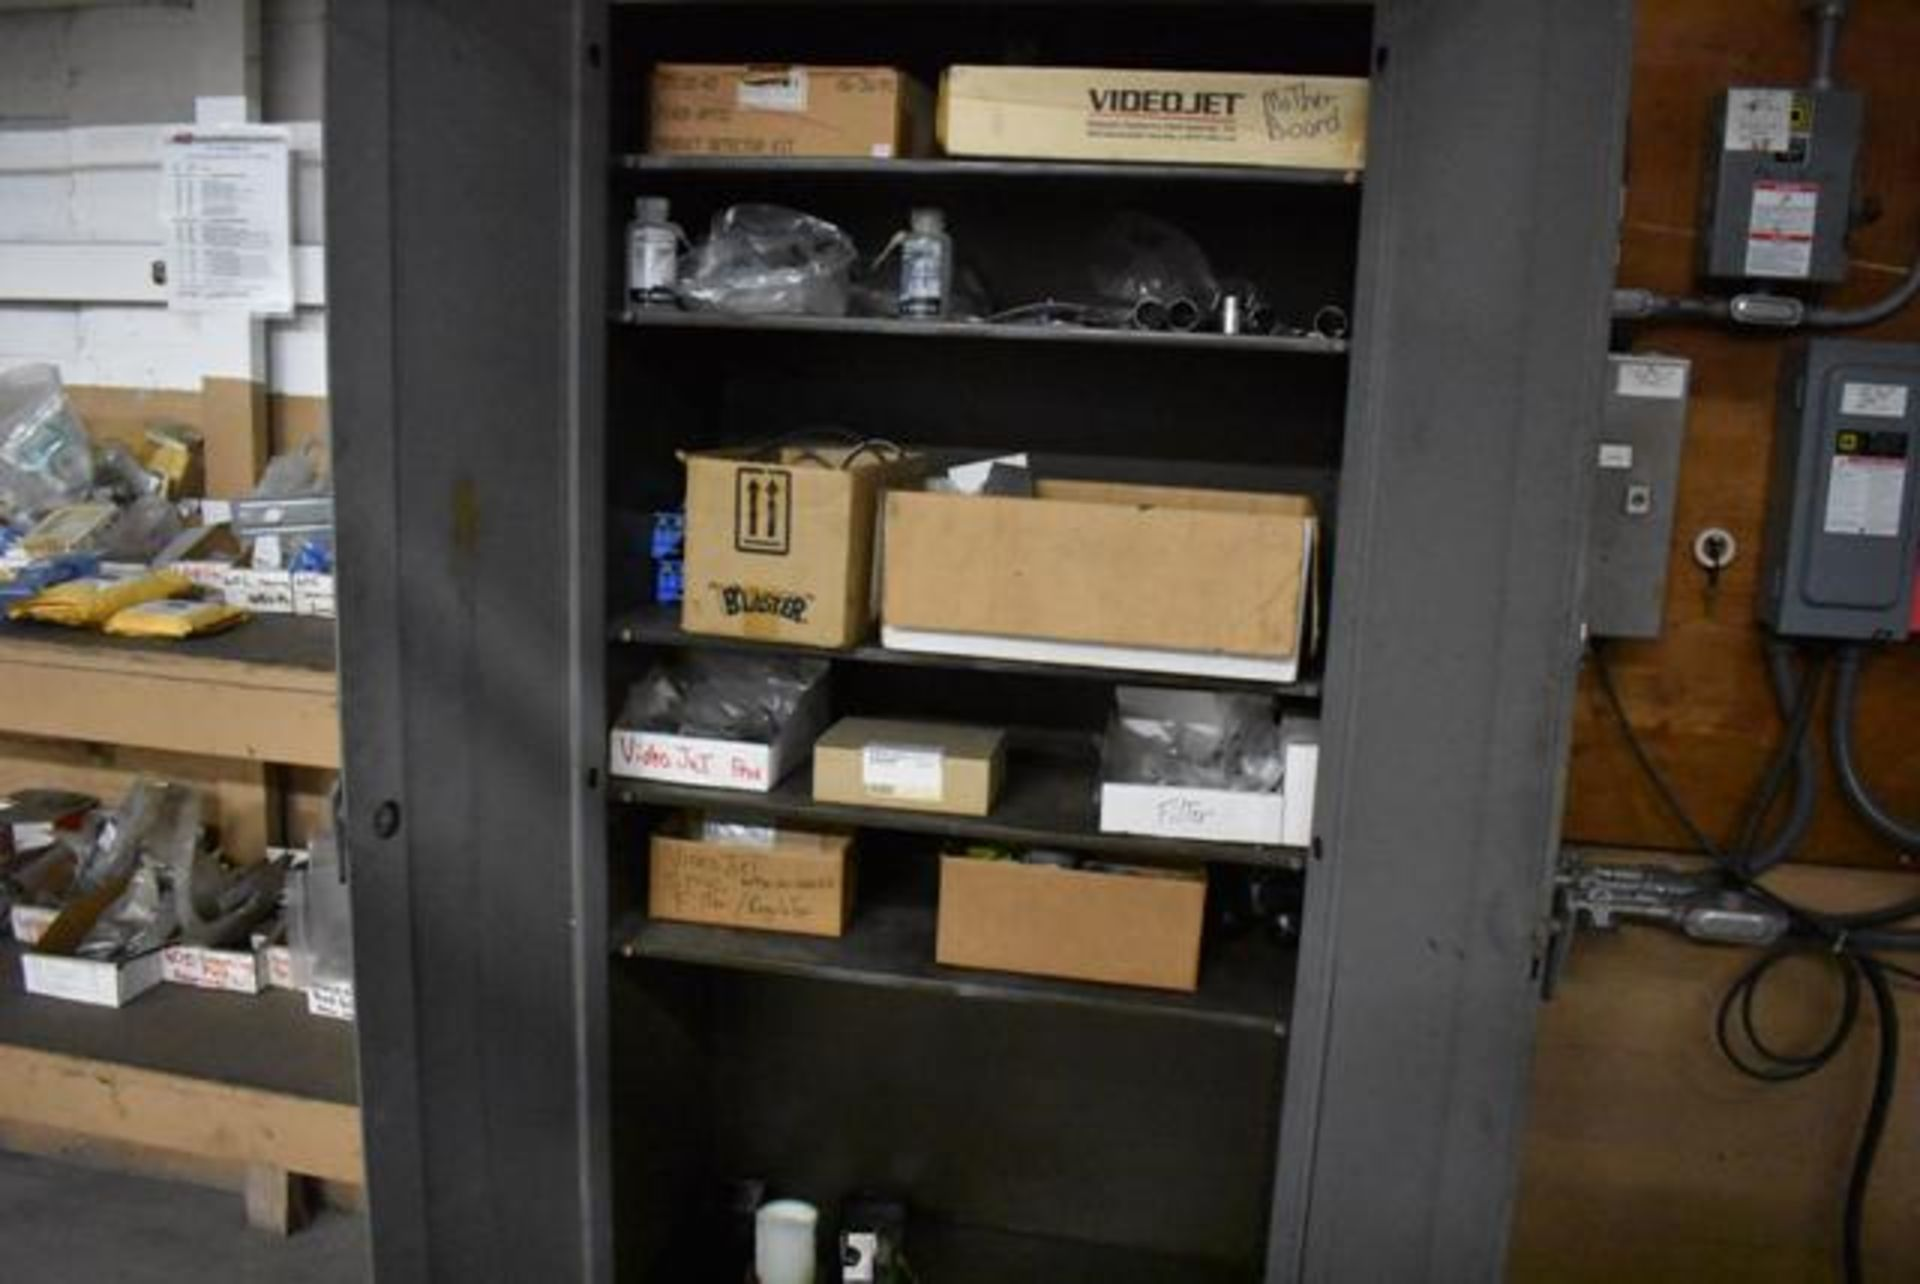 Lot 219 - VideoJet Parts & Components, Loading Fee: $50